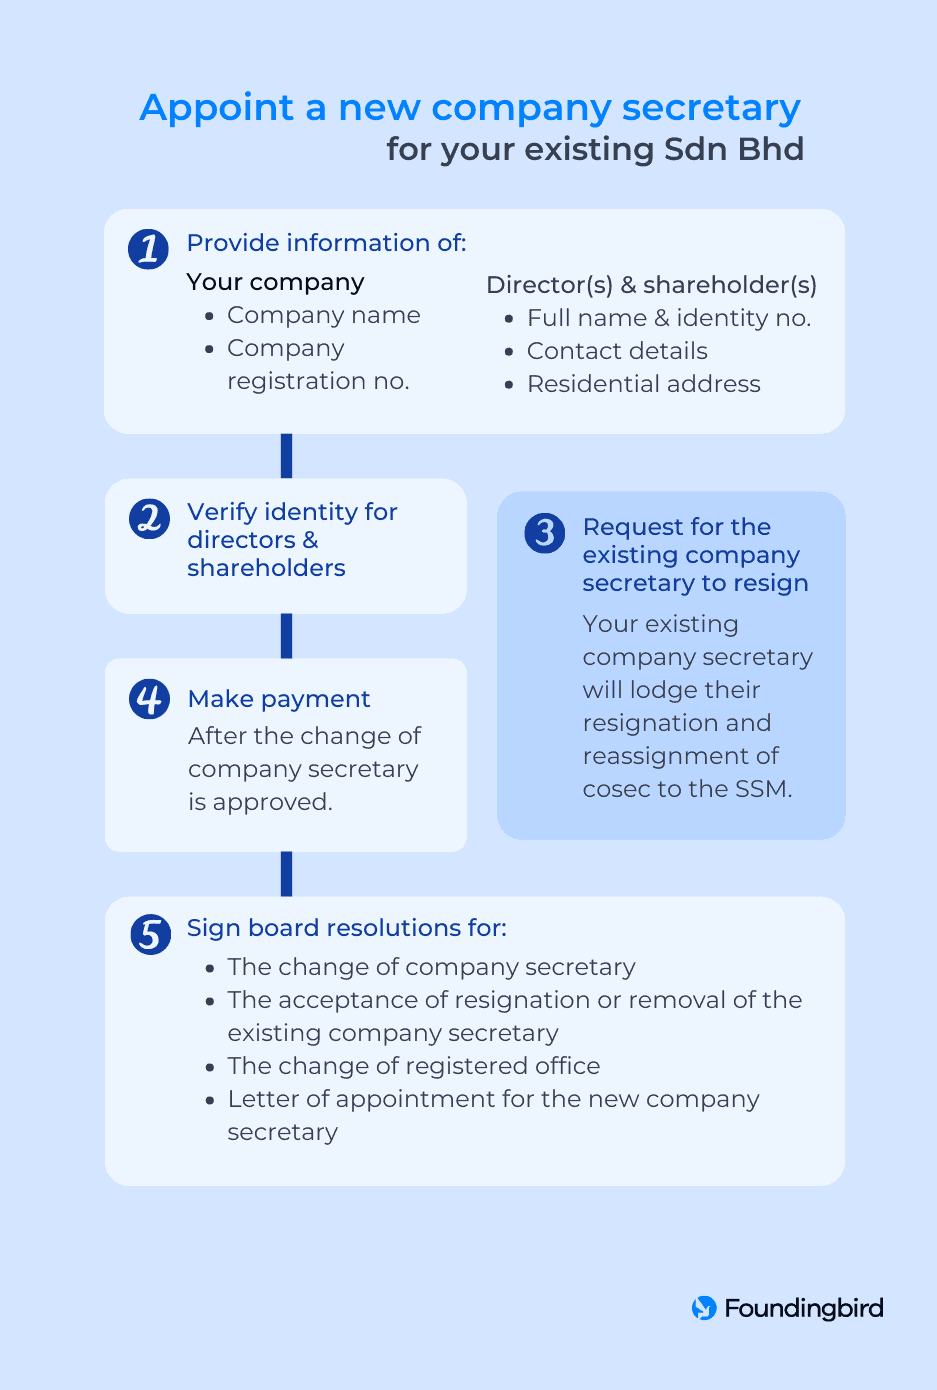 Steps to appoint new cosec for existing Sdn Bhd - Infographic